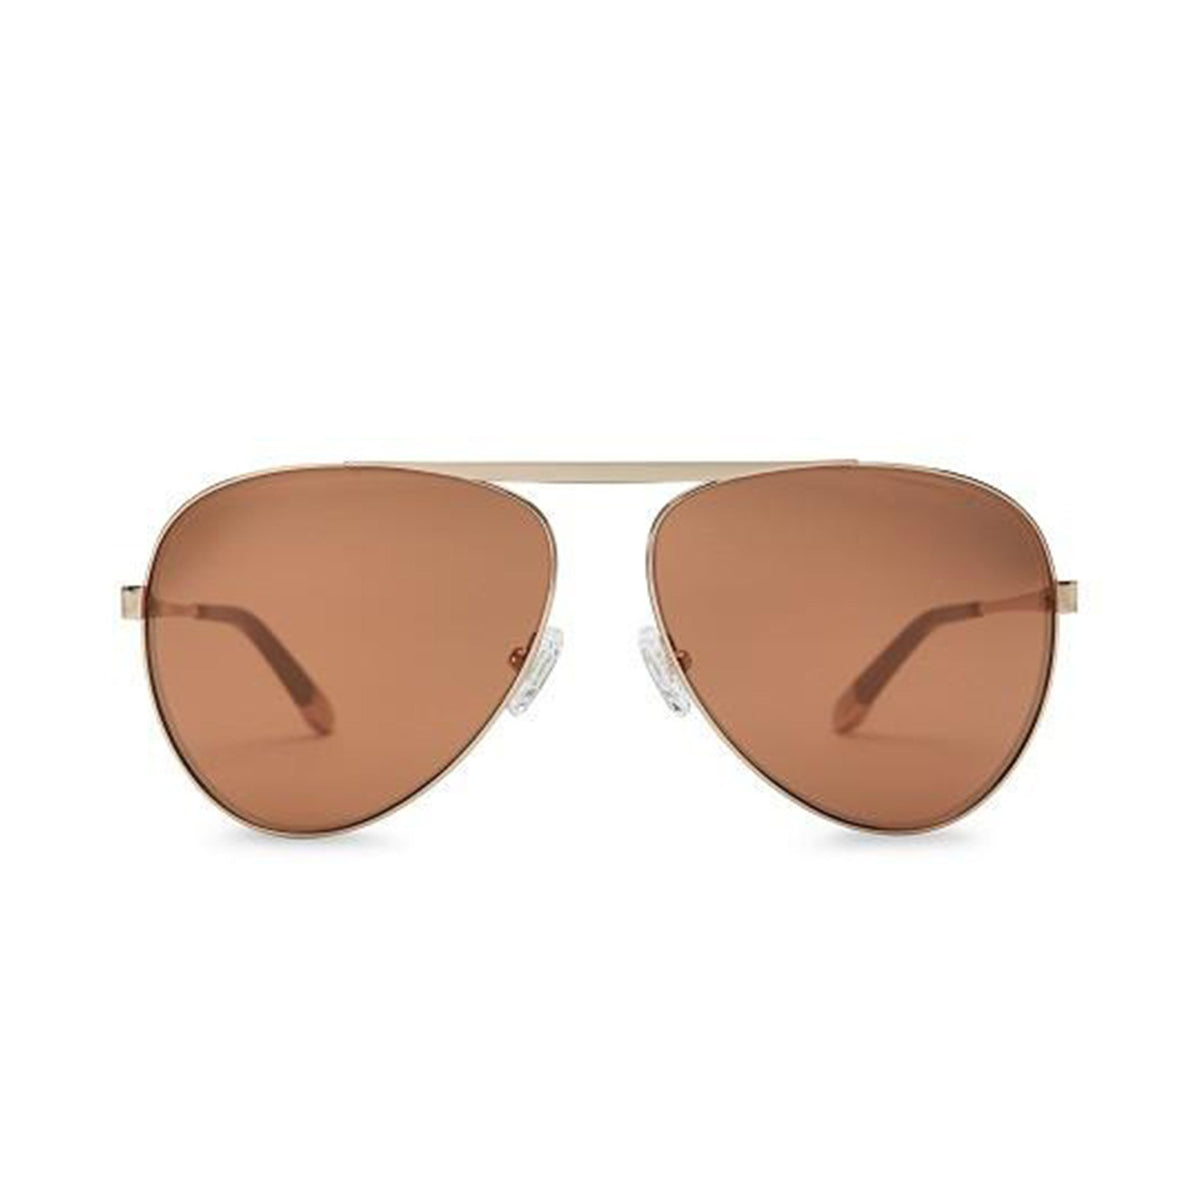 WISH YOU WERE HERE | CHAMPAGNE TAN aviator sunglasses with mirrored lenses